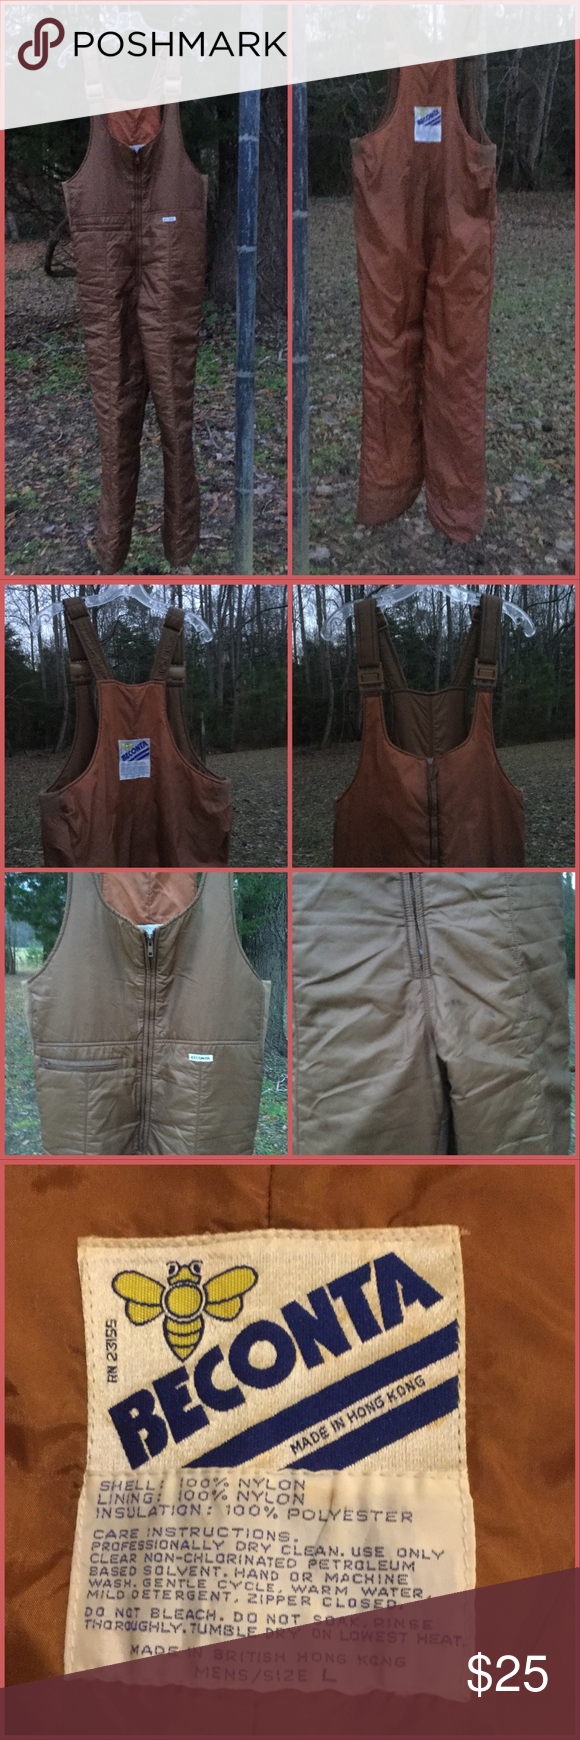 insulated overalls for hunting or sking label beconta guc on insulated overalls for men id=14732